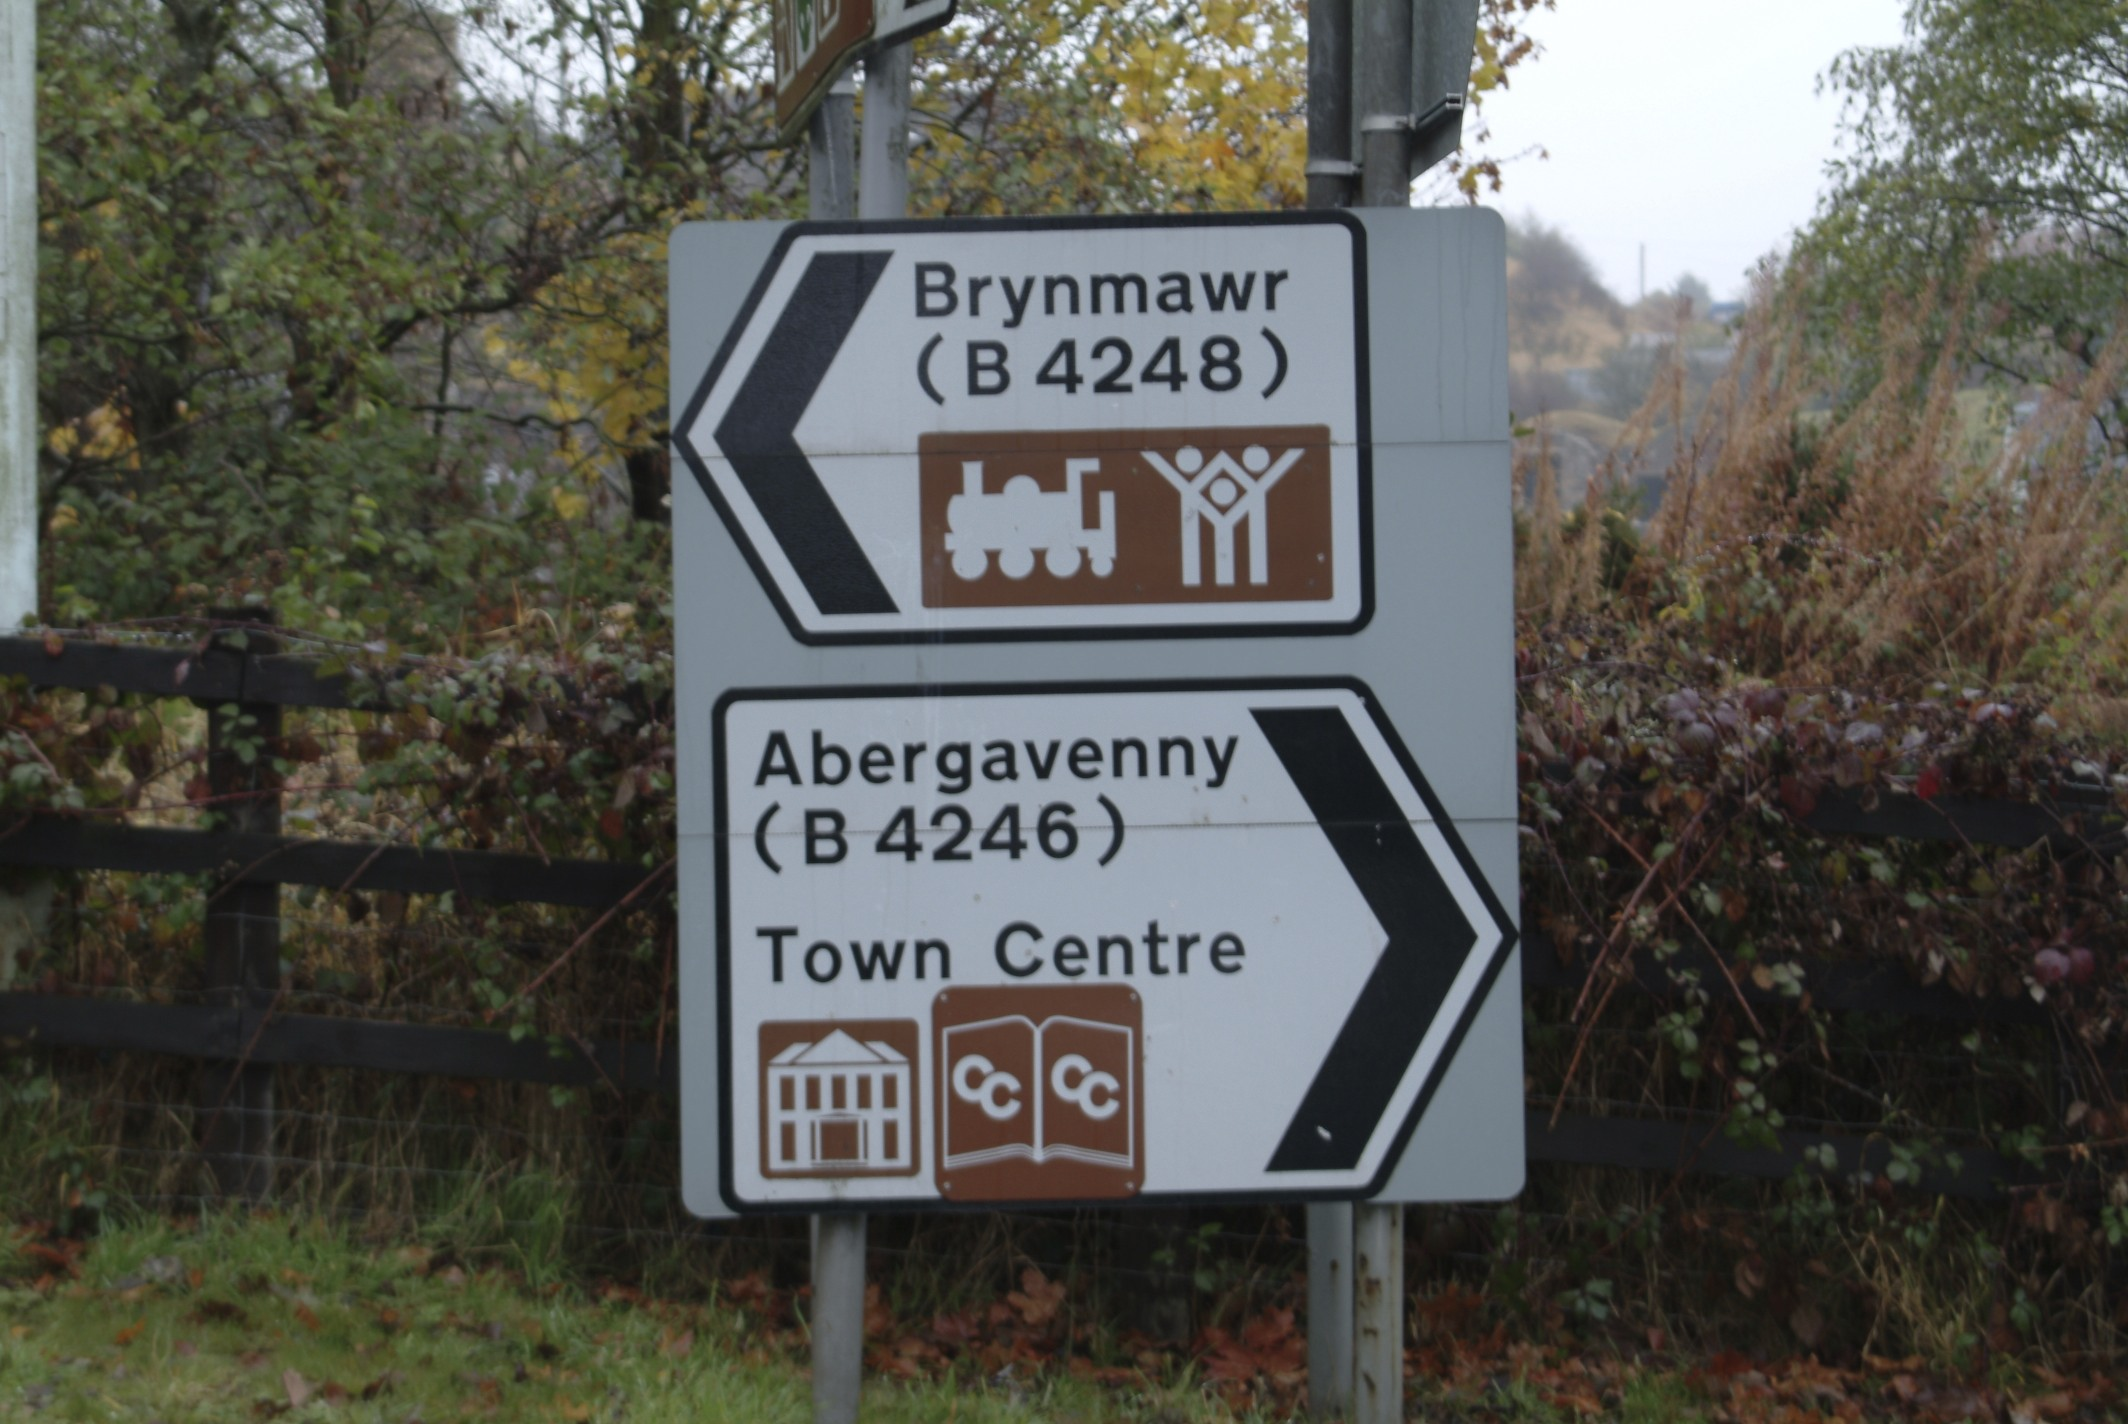 Brynmawr left. On the road to Knocker's house.